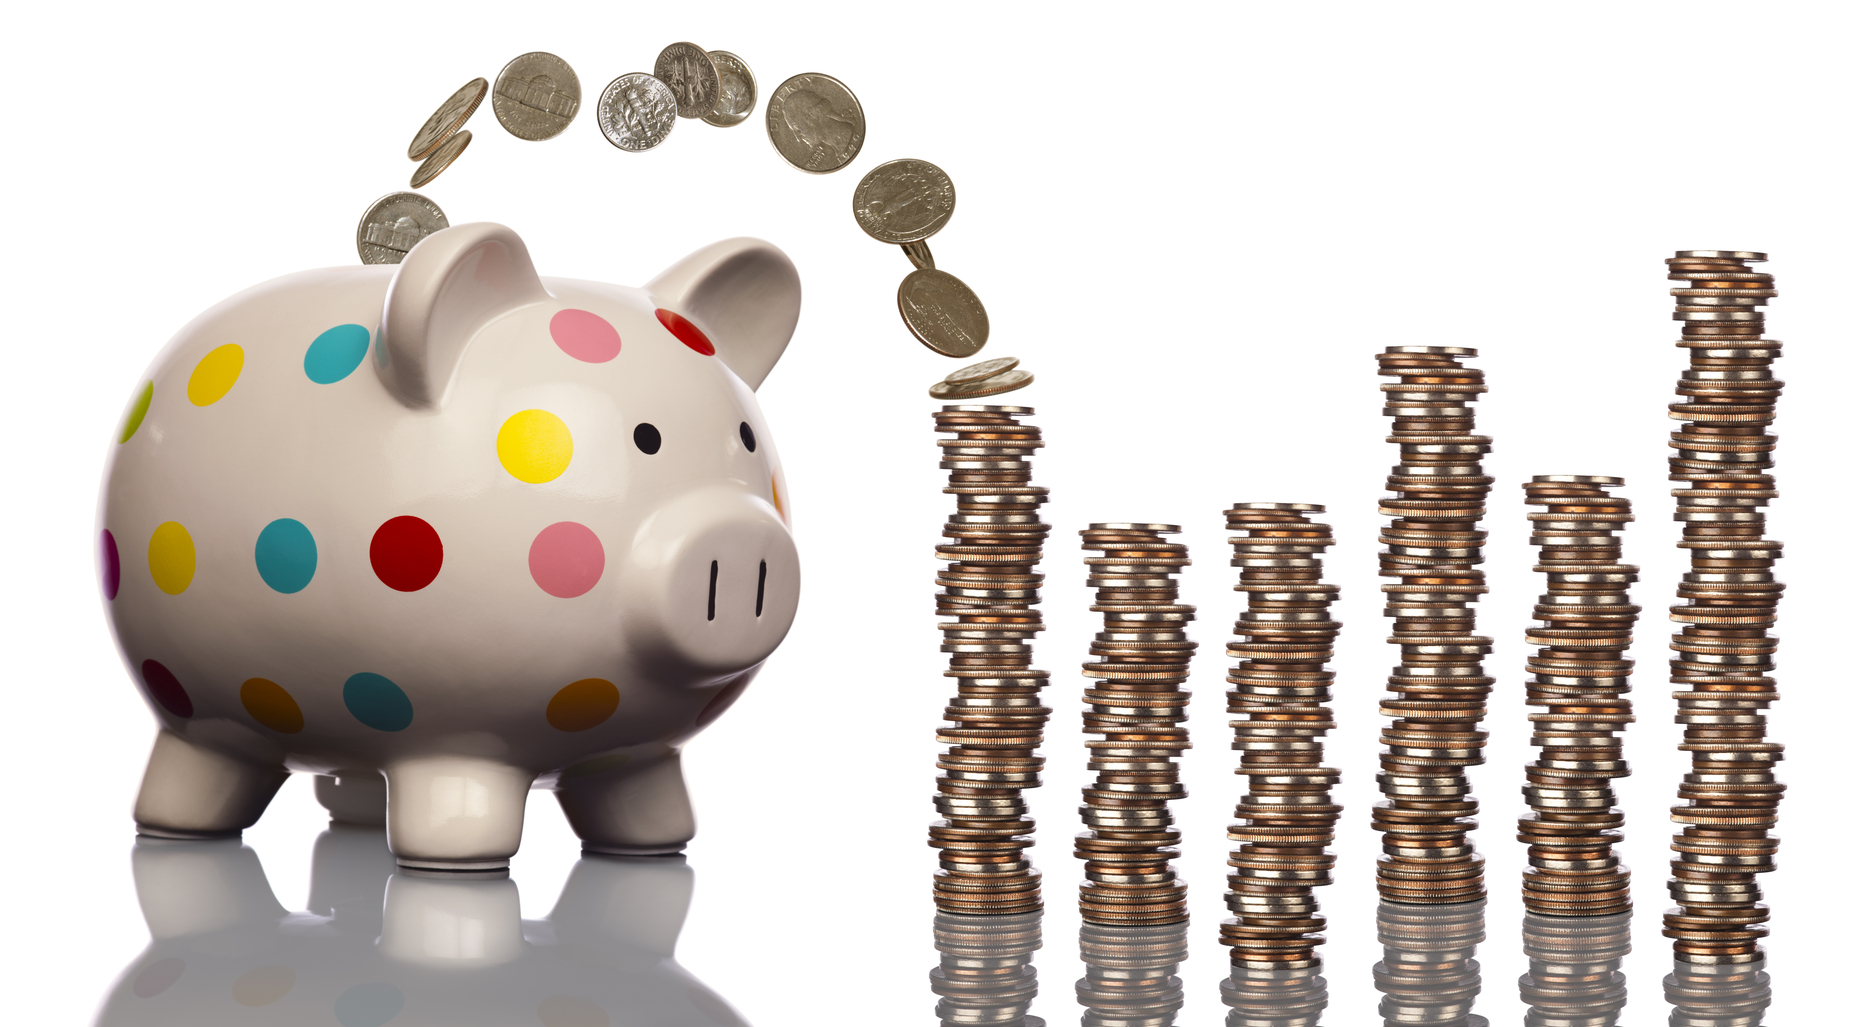 This little piggy bank saved stacks and-stacks of cash